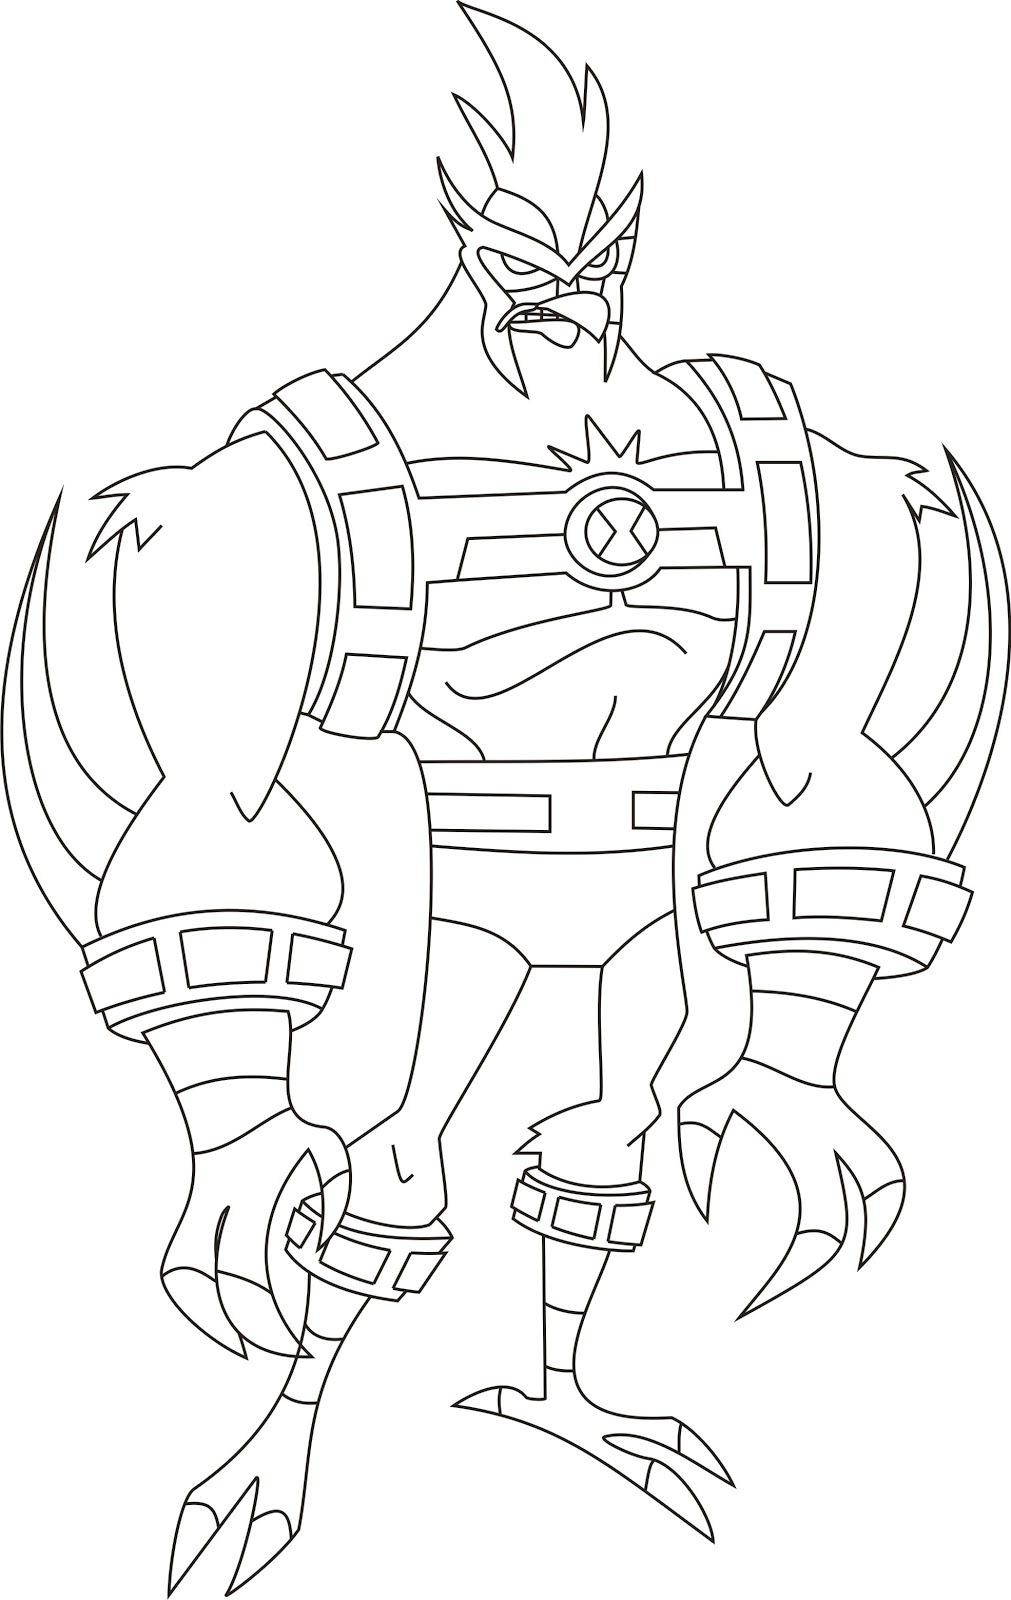 Ben 10 coloring pages 360coloringpages for Ben 10 coloring pages games